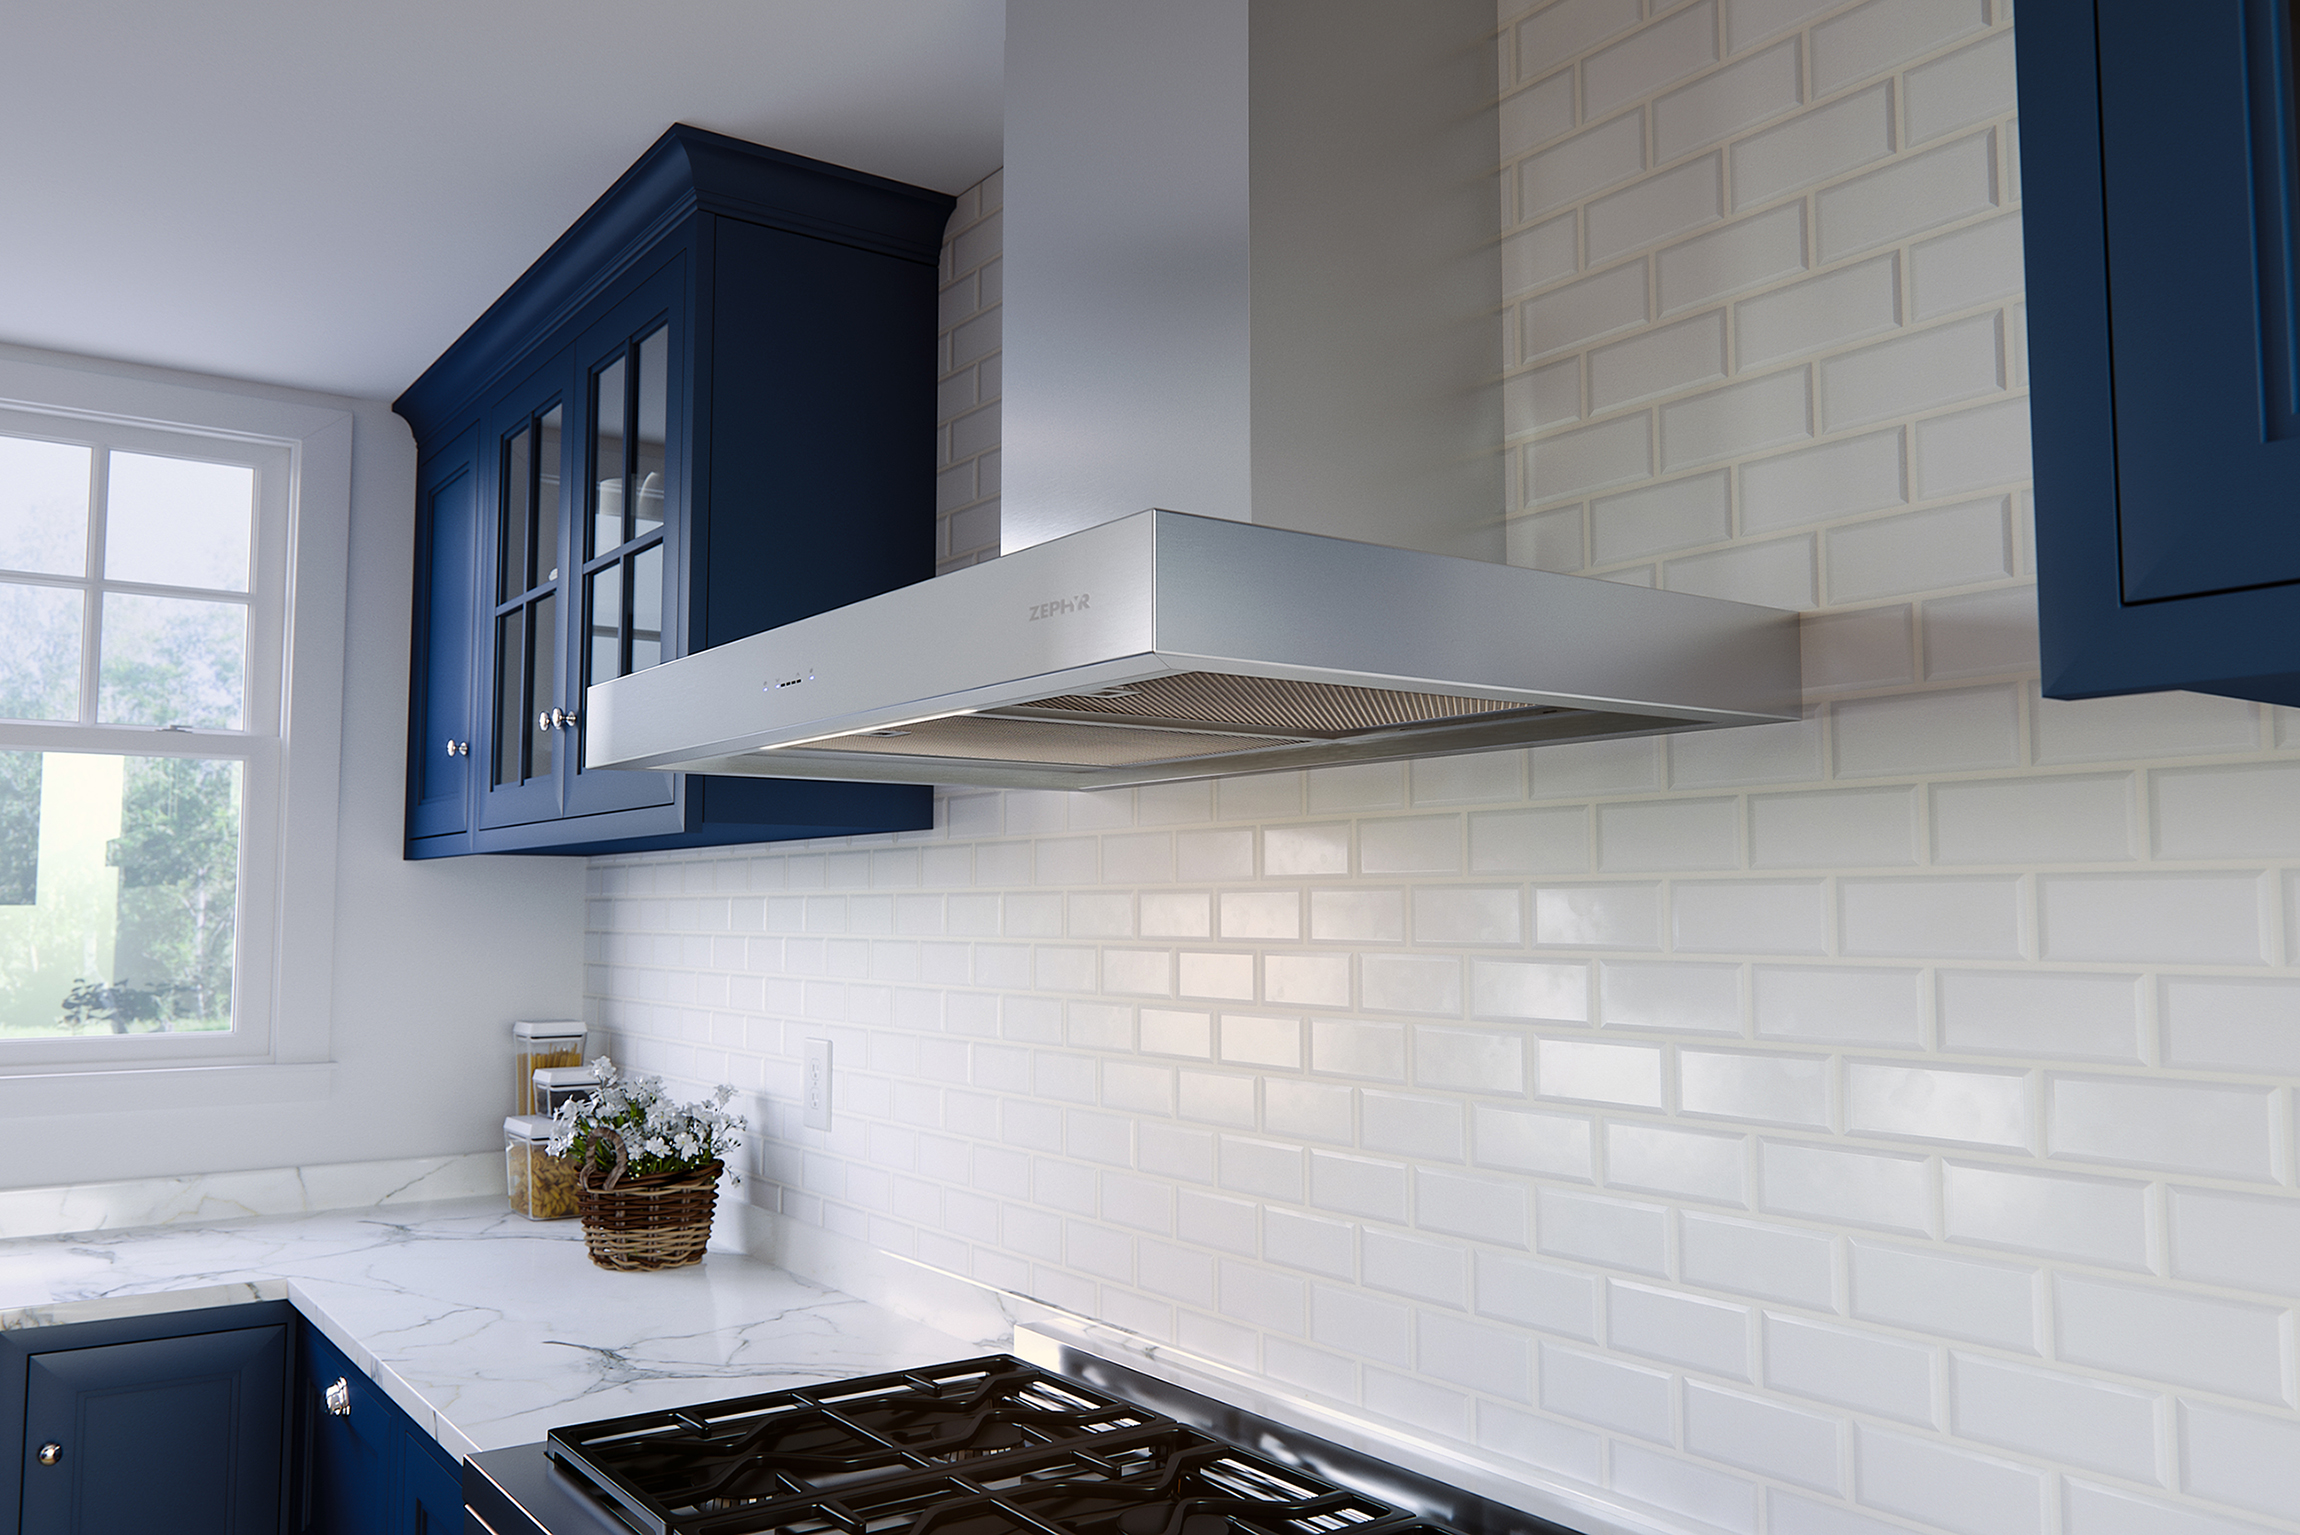 wall ideas best steel hood stool under zephyr kitchen seat bar with and mounted insert designs furniture your ovens design for range cabinet hoods wood double plus stainless minimalist modern